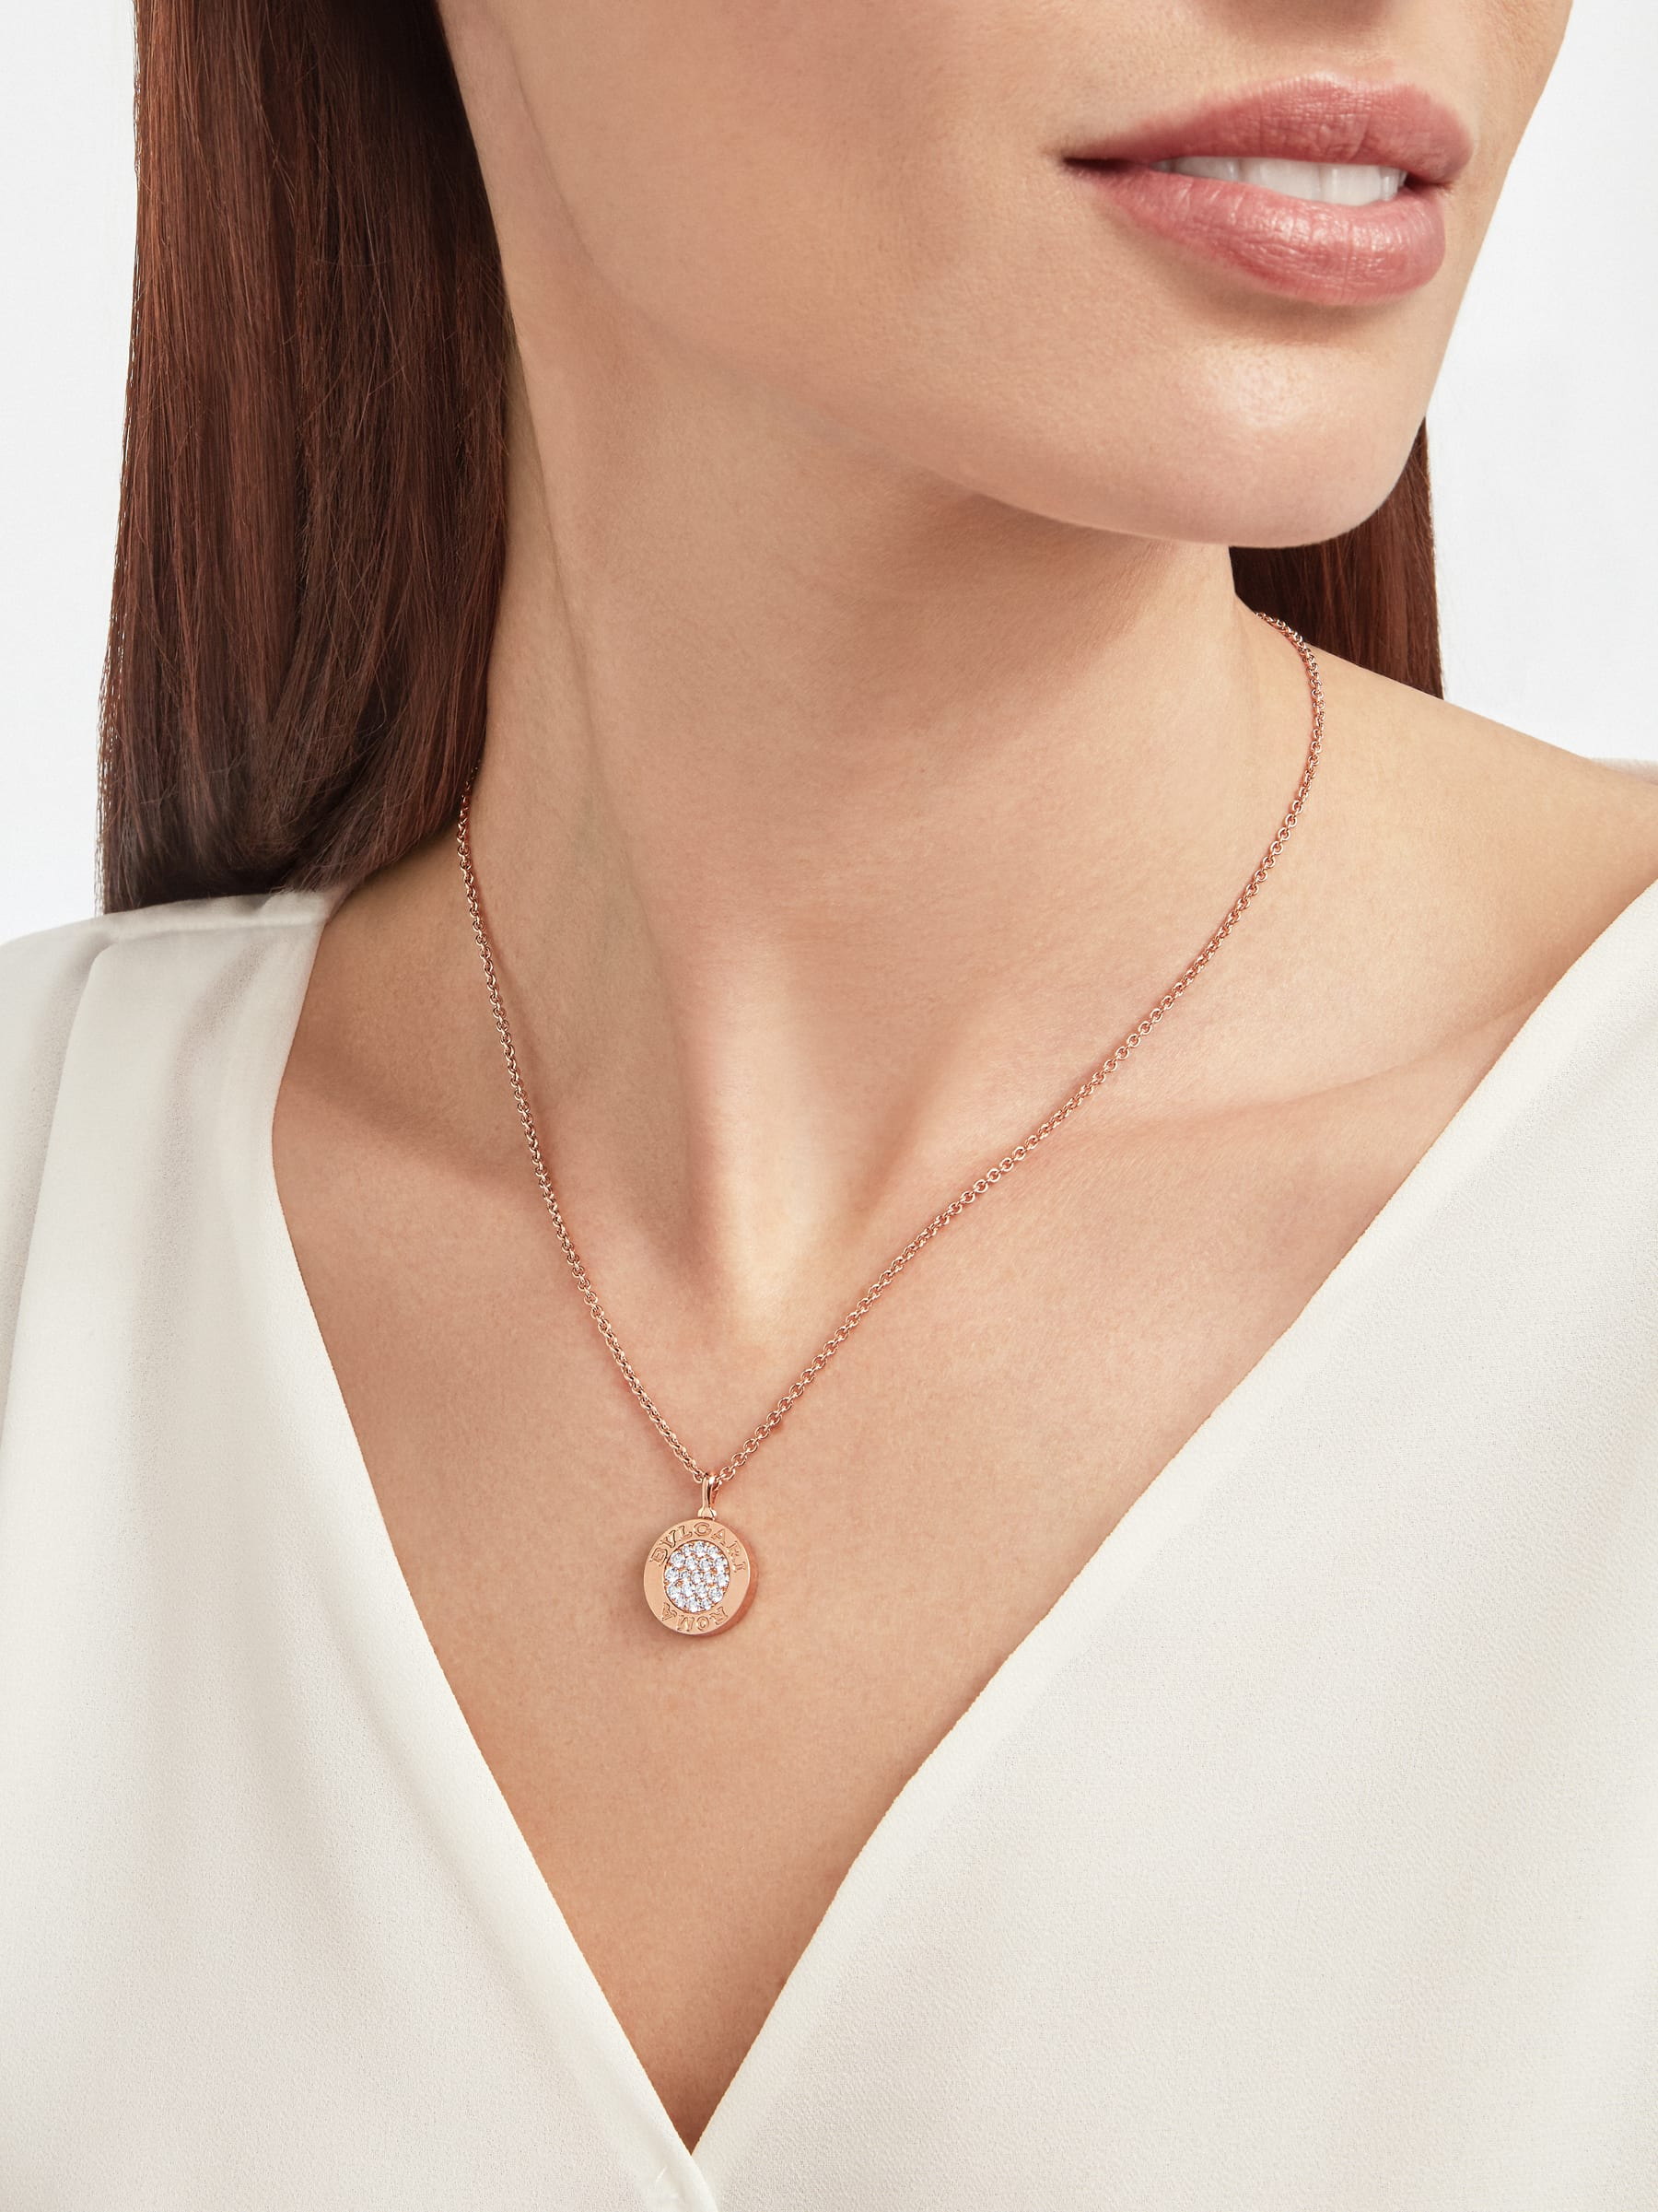 BVLGARI BVLGARI 18 kt rose gold chain and 18 kt rose gold pendant set with mother-of-pearl insert and pavé diamonds (0.34 ct) 358375 image 6